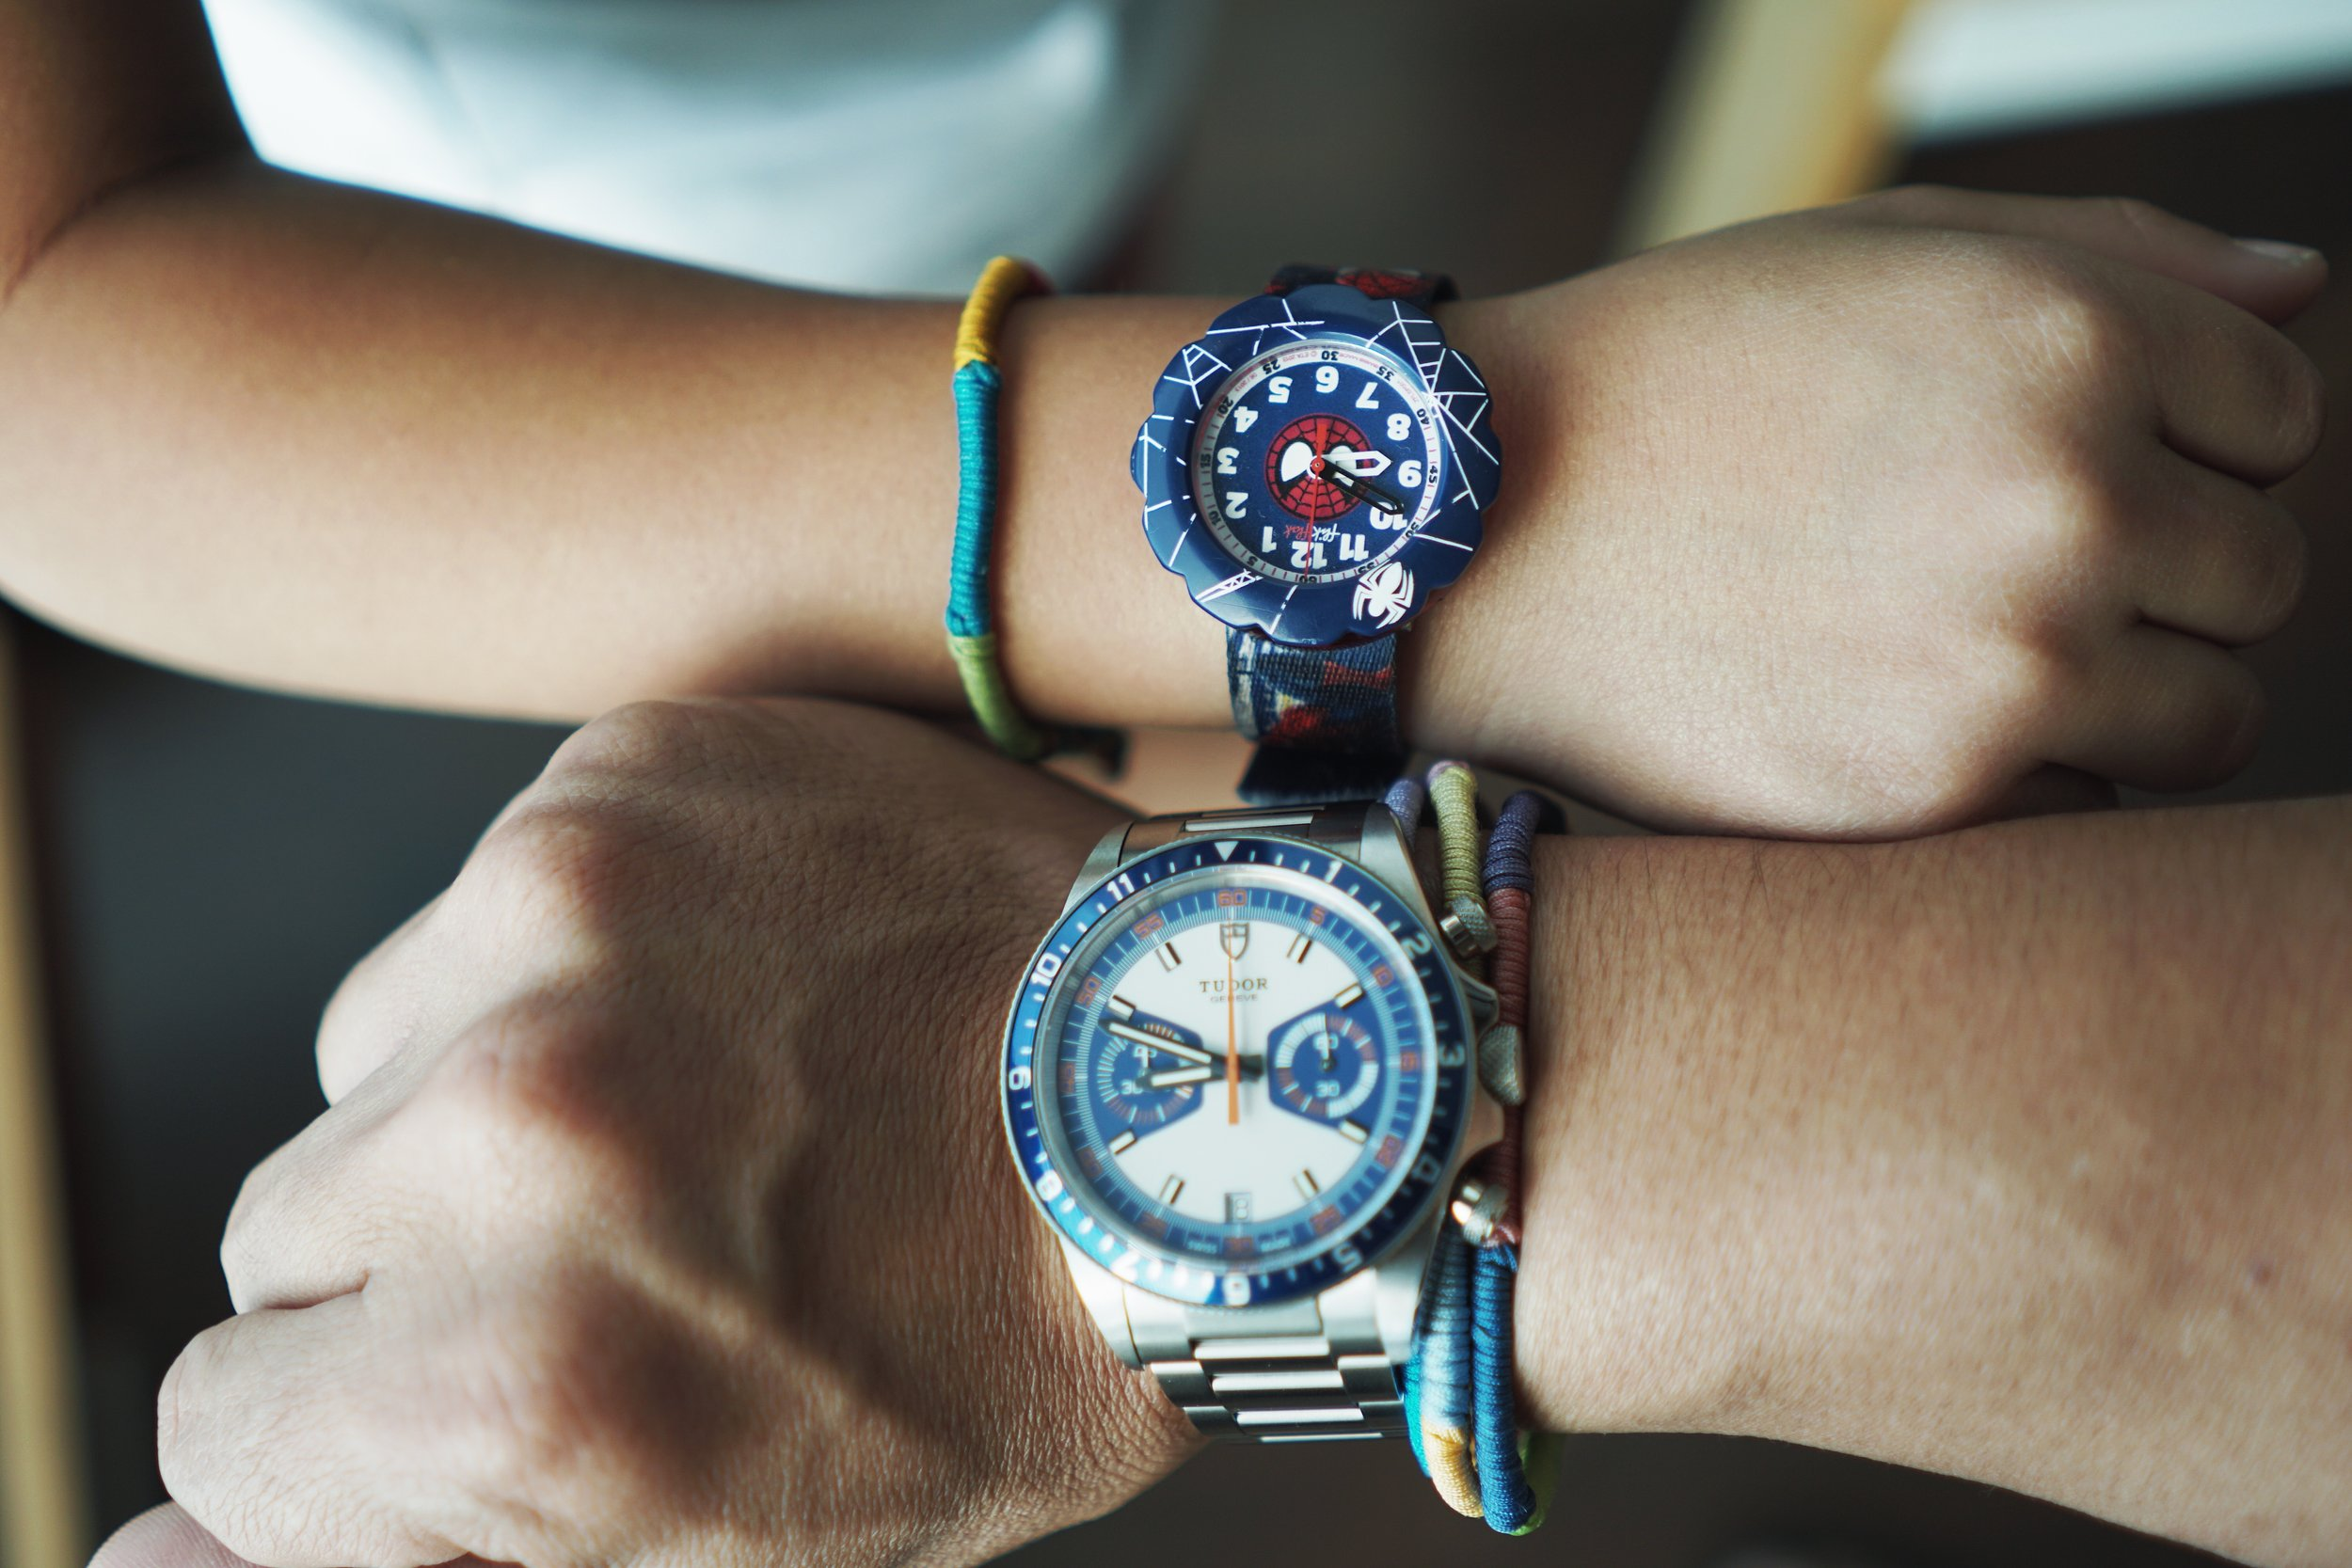 Swatch Spider-Cycle ref FLSP001 and Tudor Heritage Chrono Blue ref 70330B